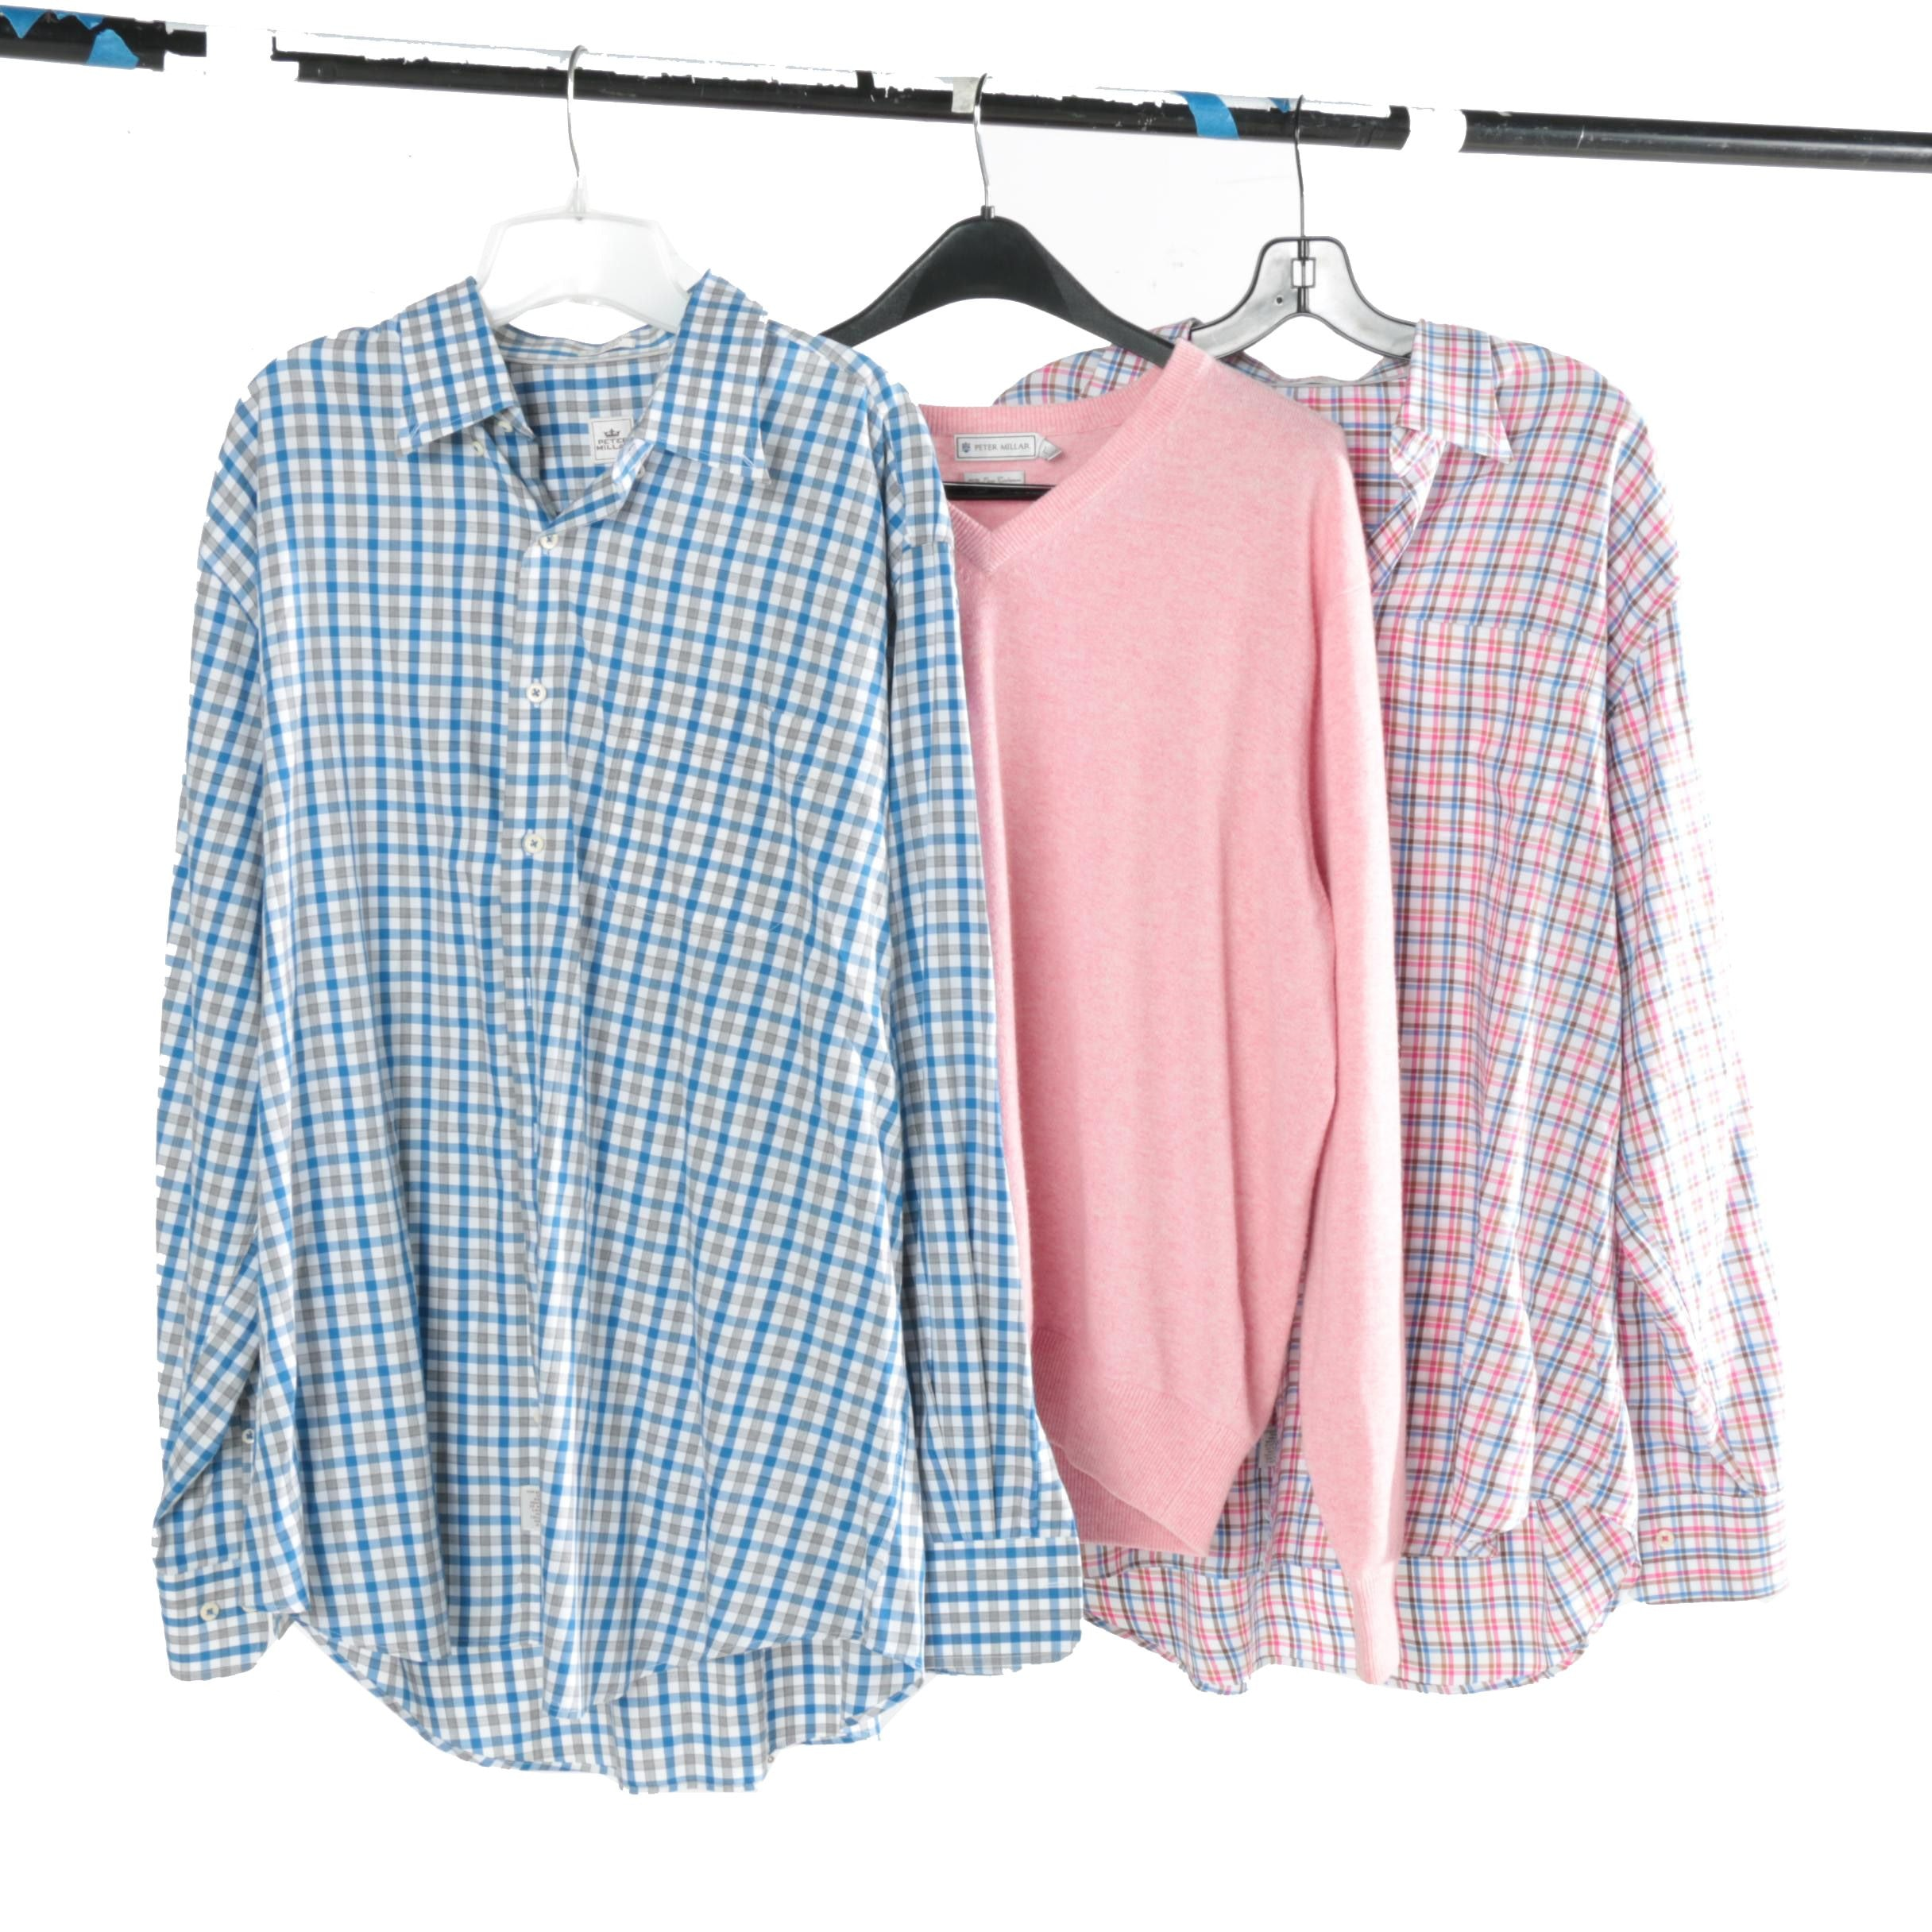 Peter Millar Cashmere Sweater and Pair of Shirts